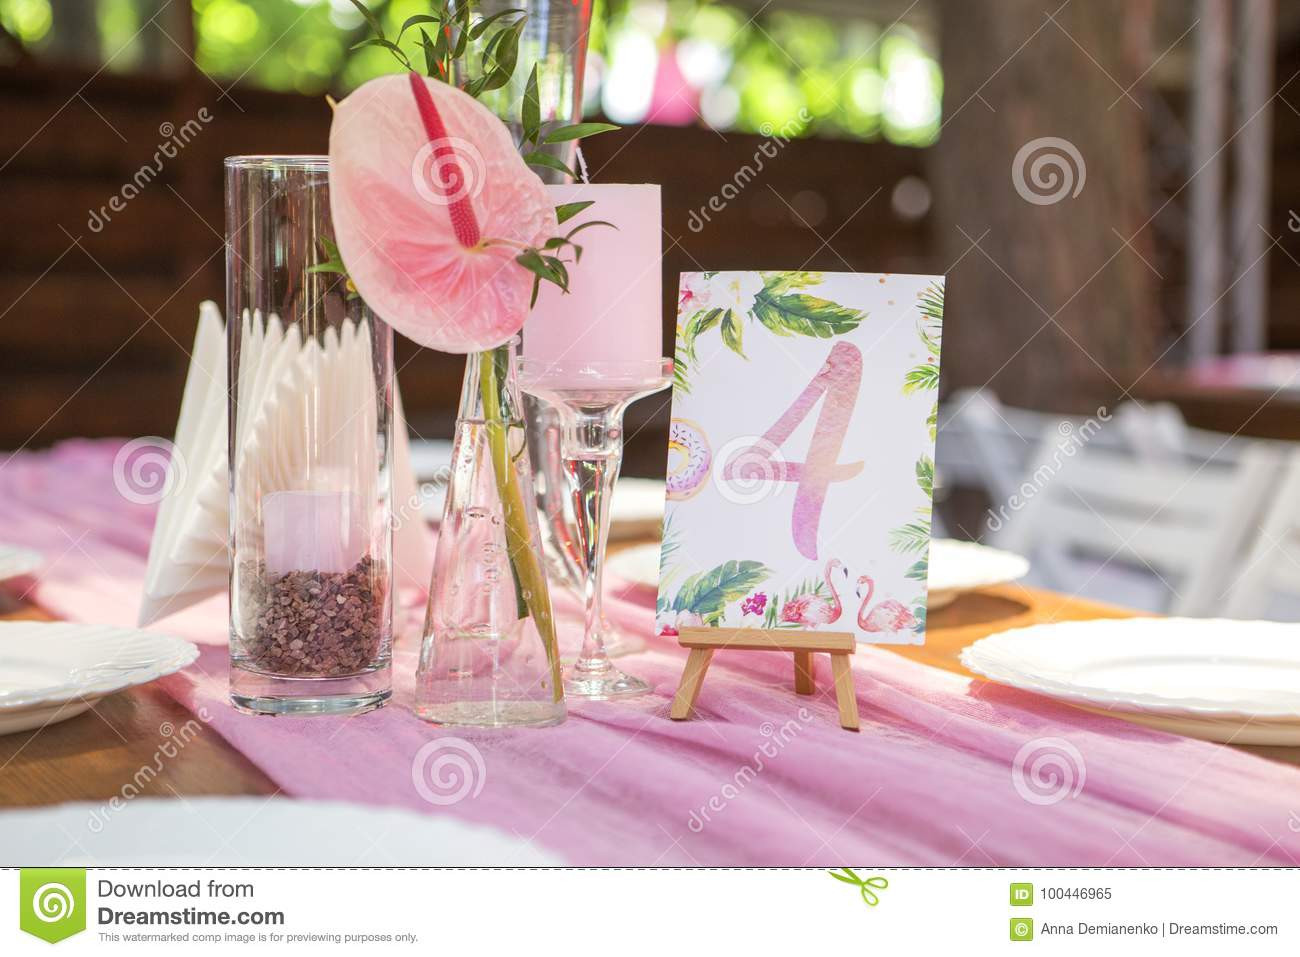 tall vases for wedding aisle of decoration for a wedding ceremony on a back yard with tables pl for decoration for a wedding ceremony on a back yard with tables plates and vases full of anth